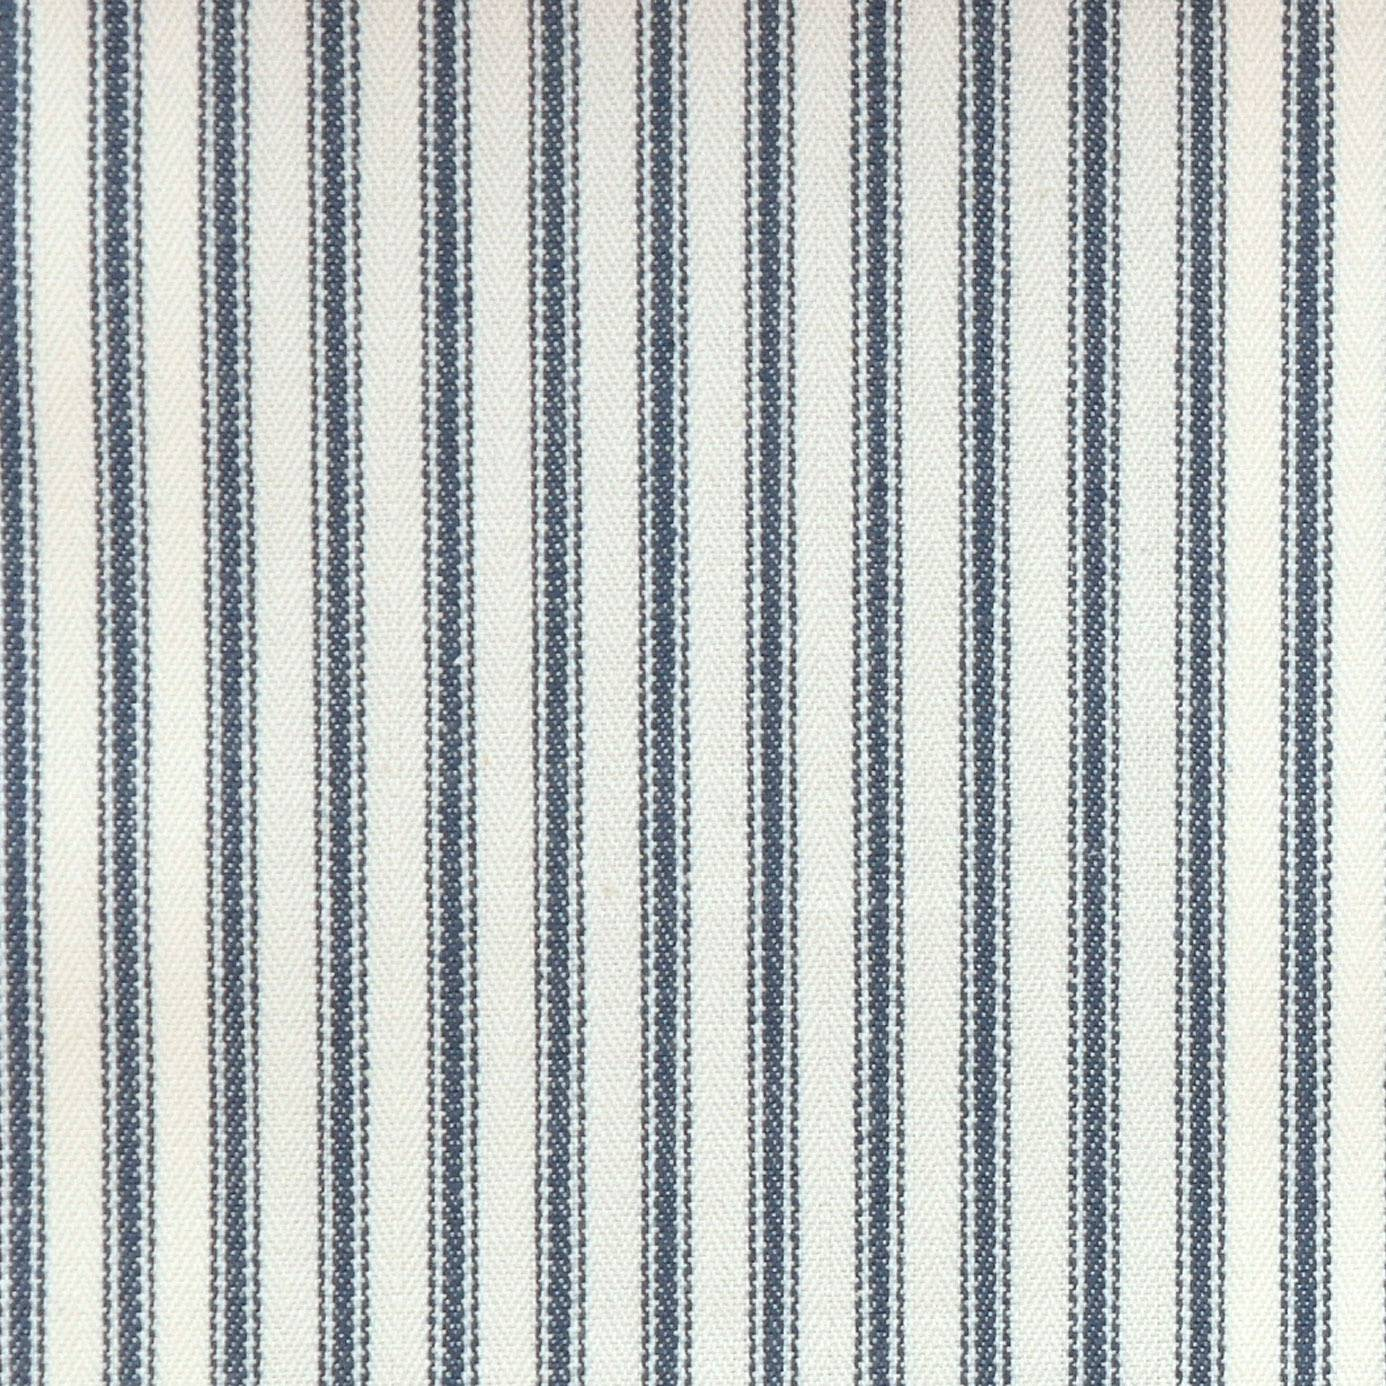 sutton fabric navy f0420 04 clarke clarke ticking ForTicking Fabric